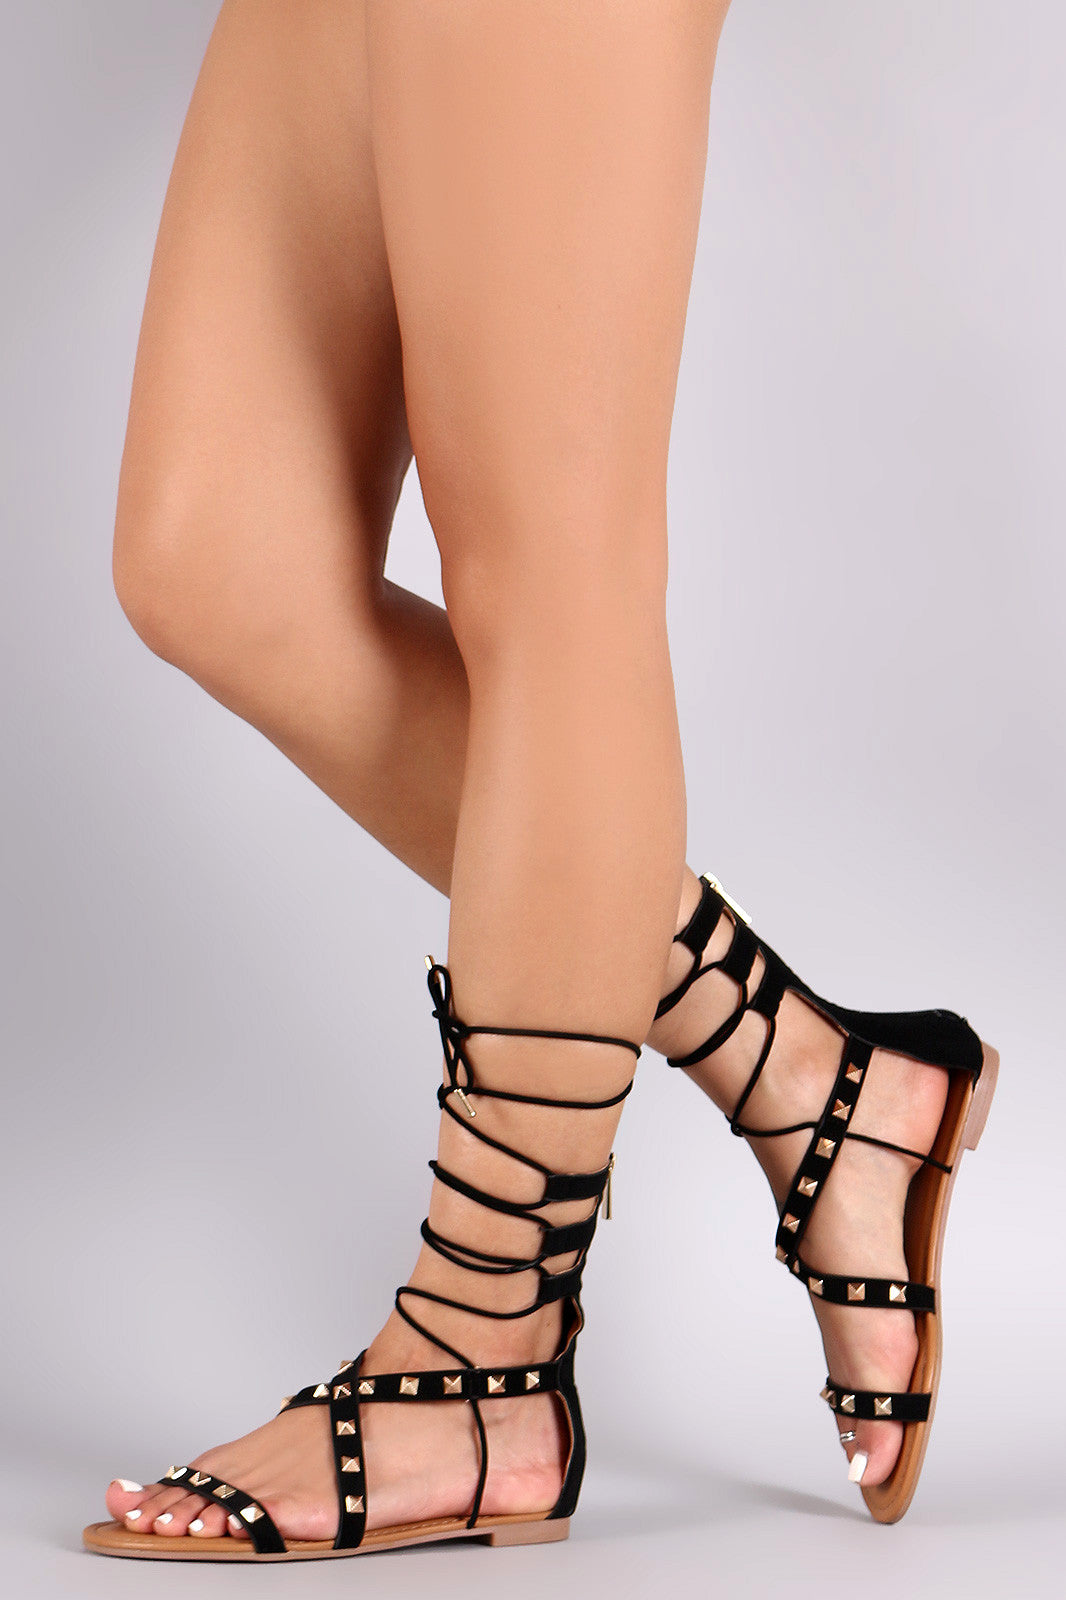 64faed7f76d ... Bamboo Nubuck Prism Studded Lace Up Flat Sandal - Simply BKC - 5 ...